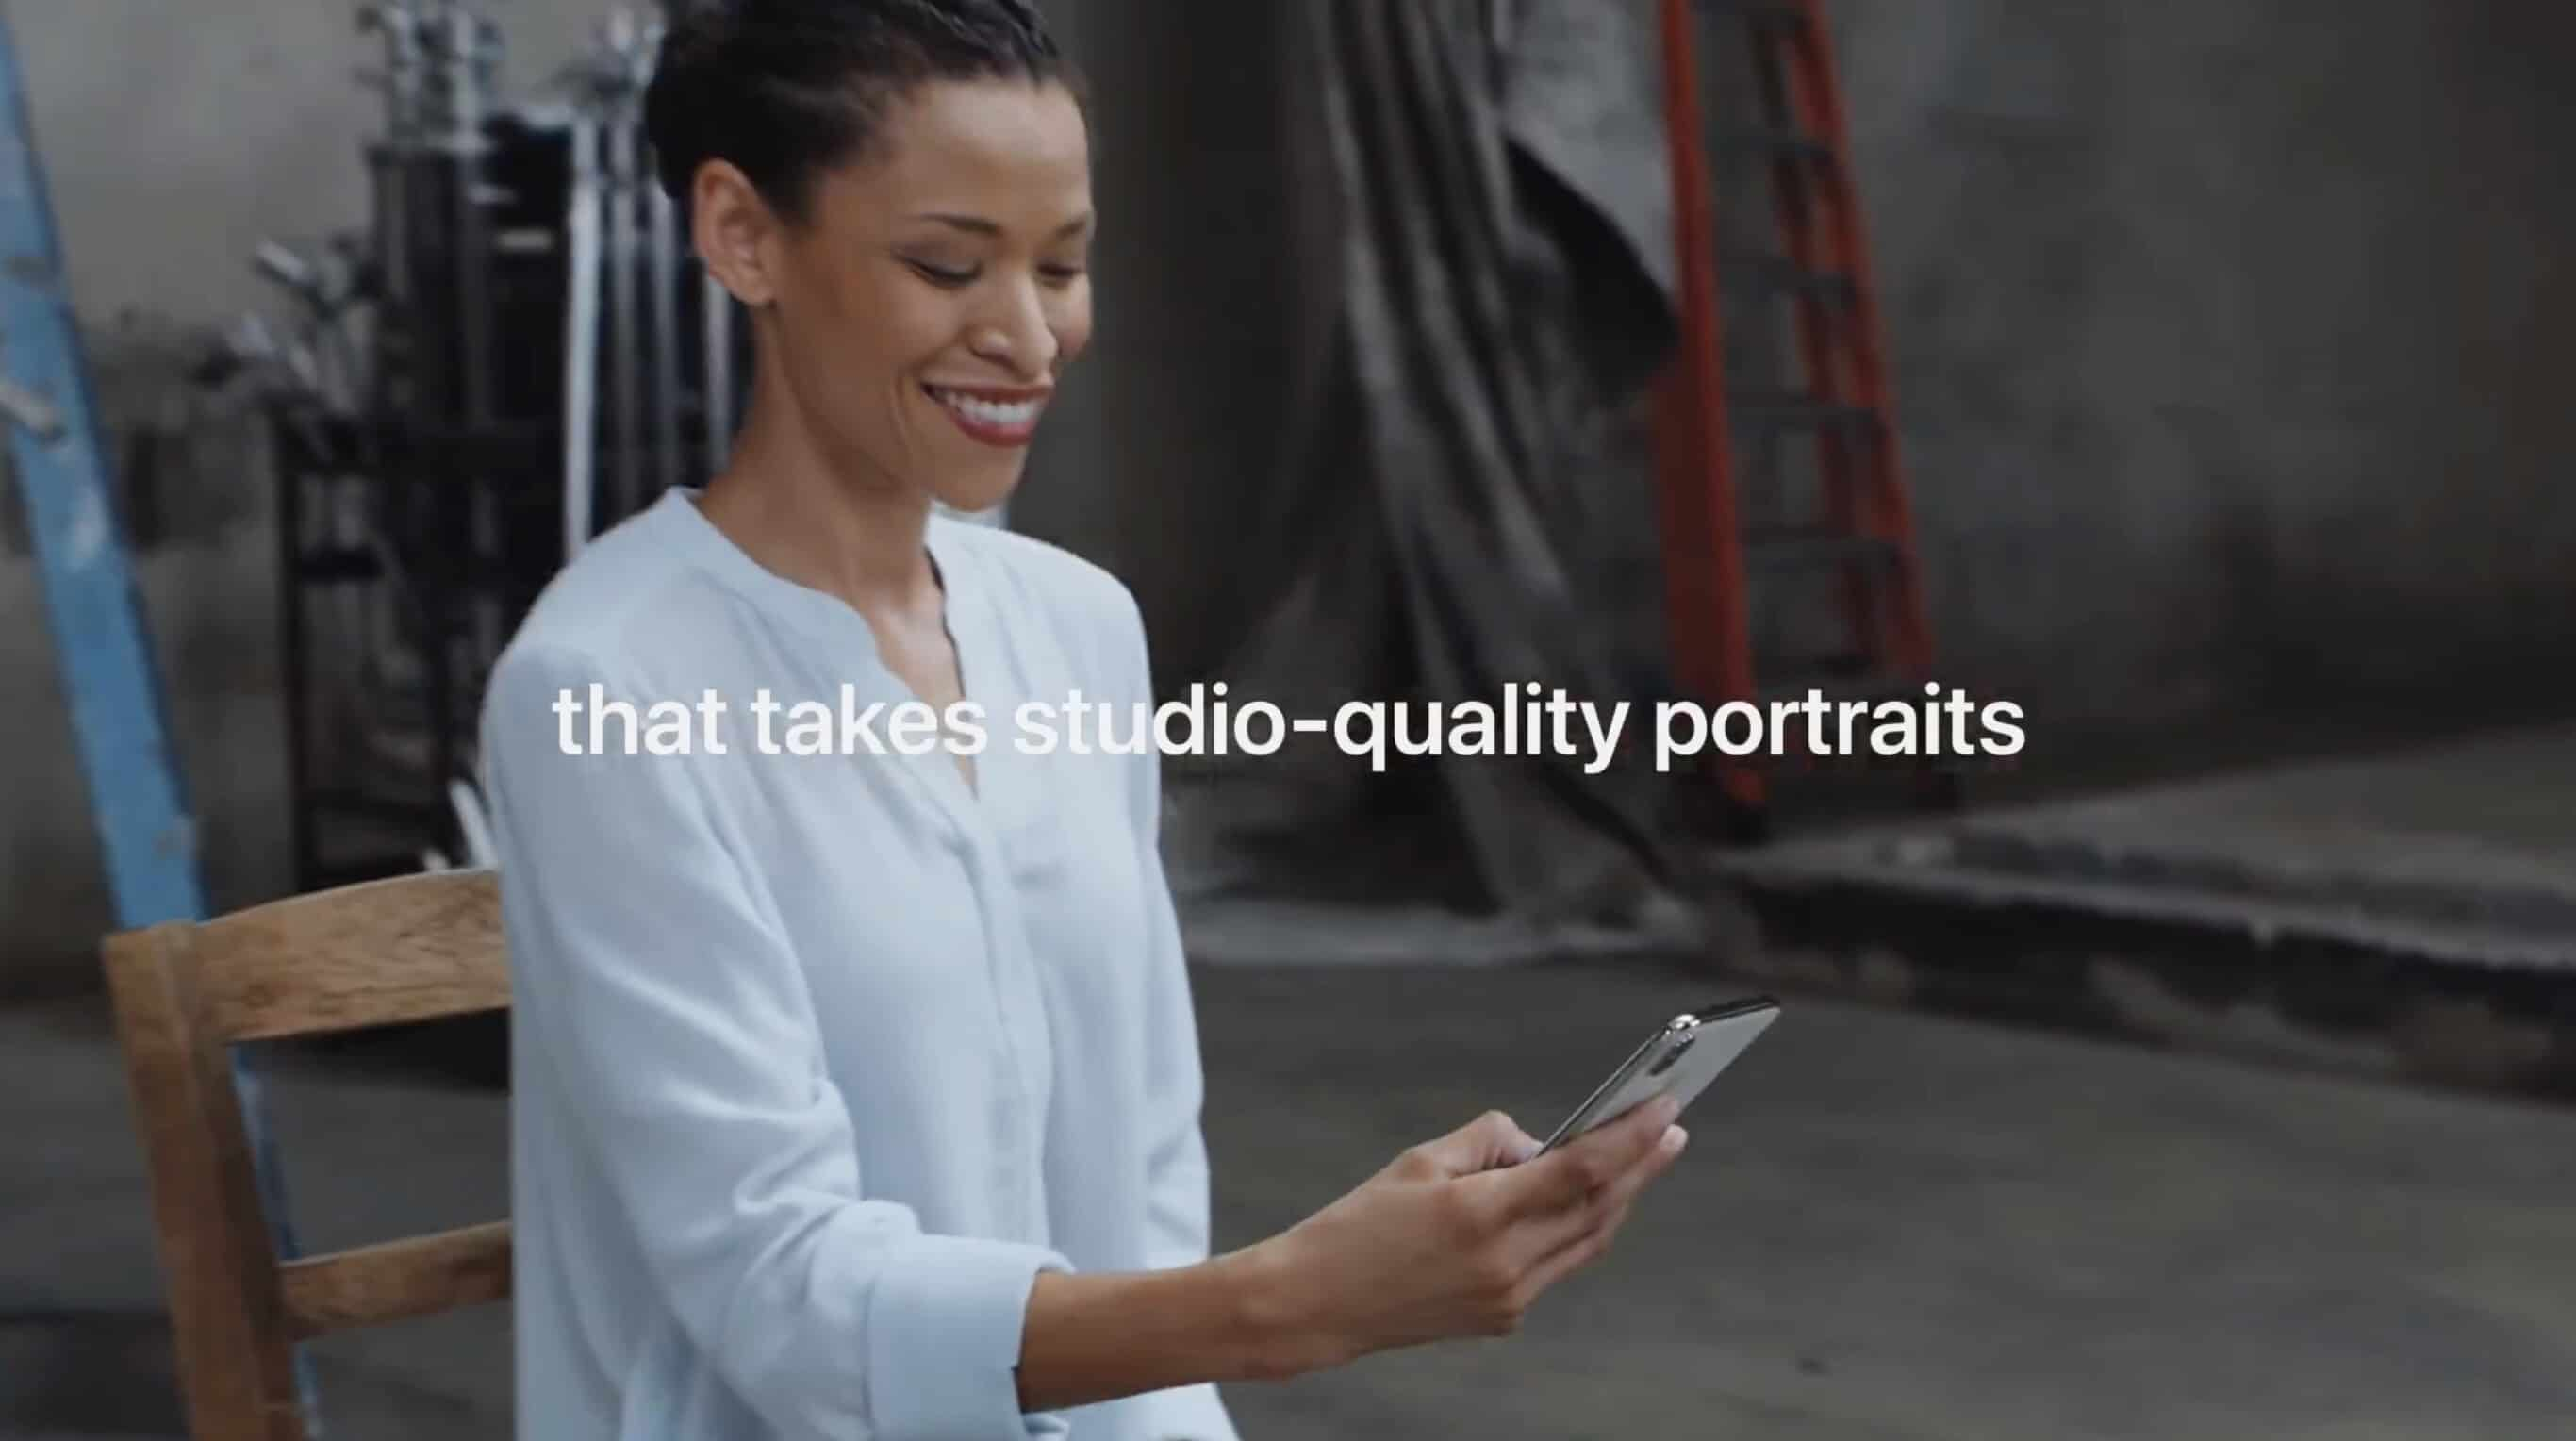 Apple ad says iPhone X takes studio-quality portraits.